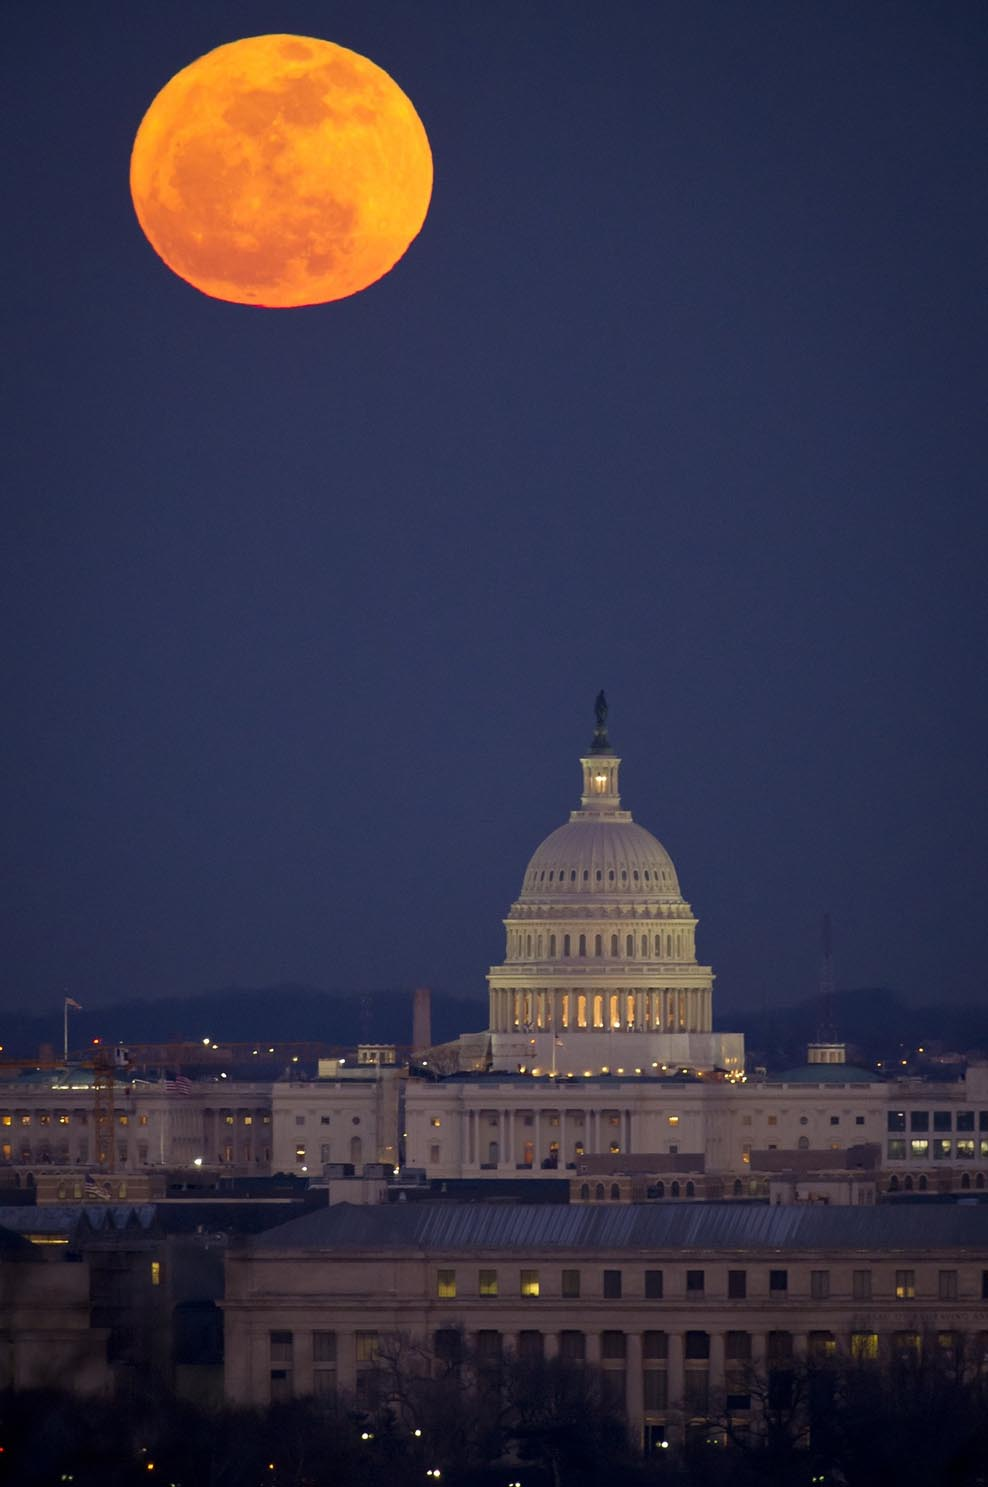 The Government Capitol building under a full moon